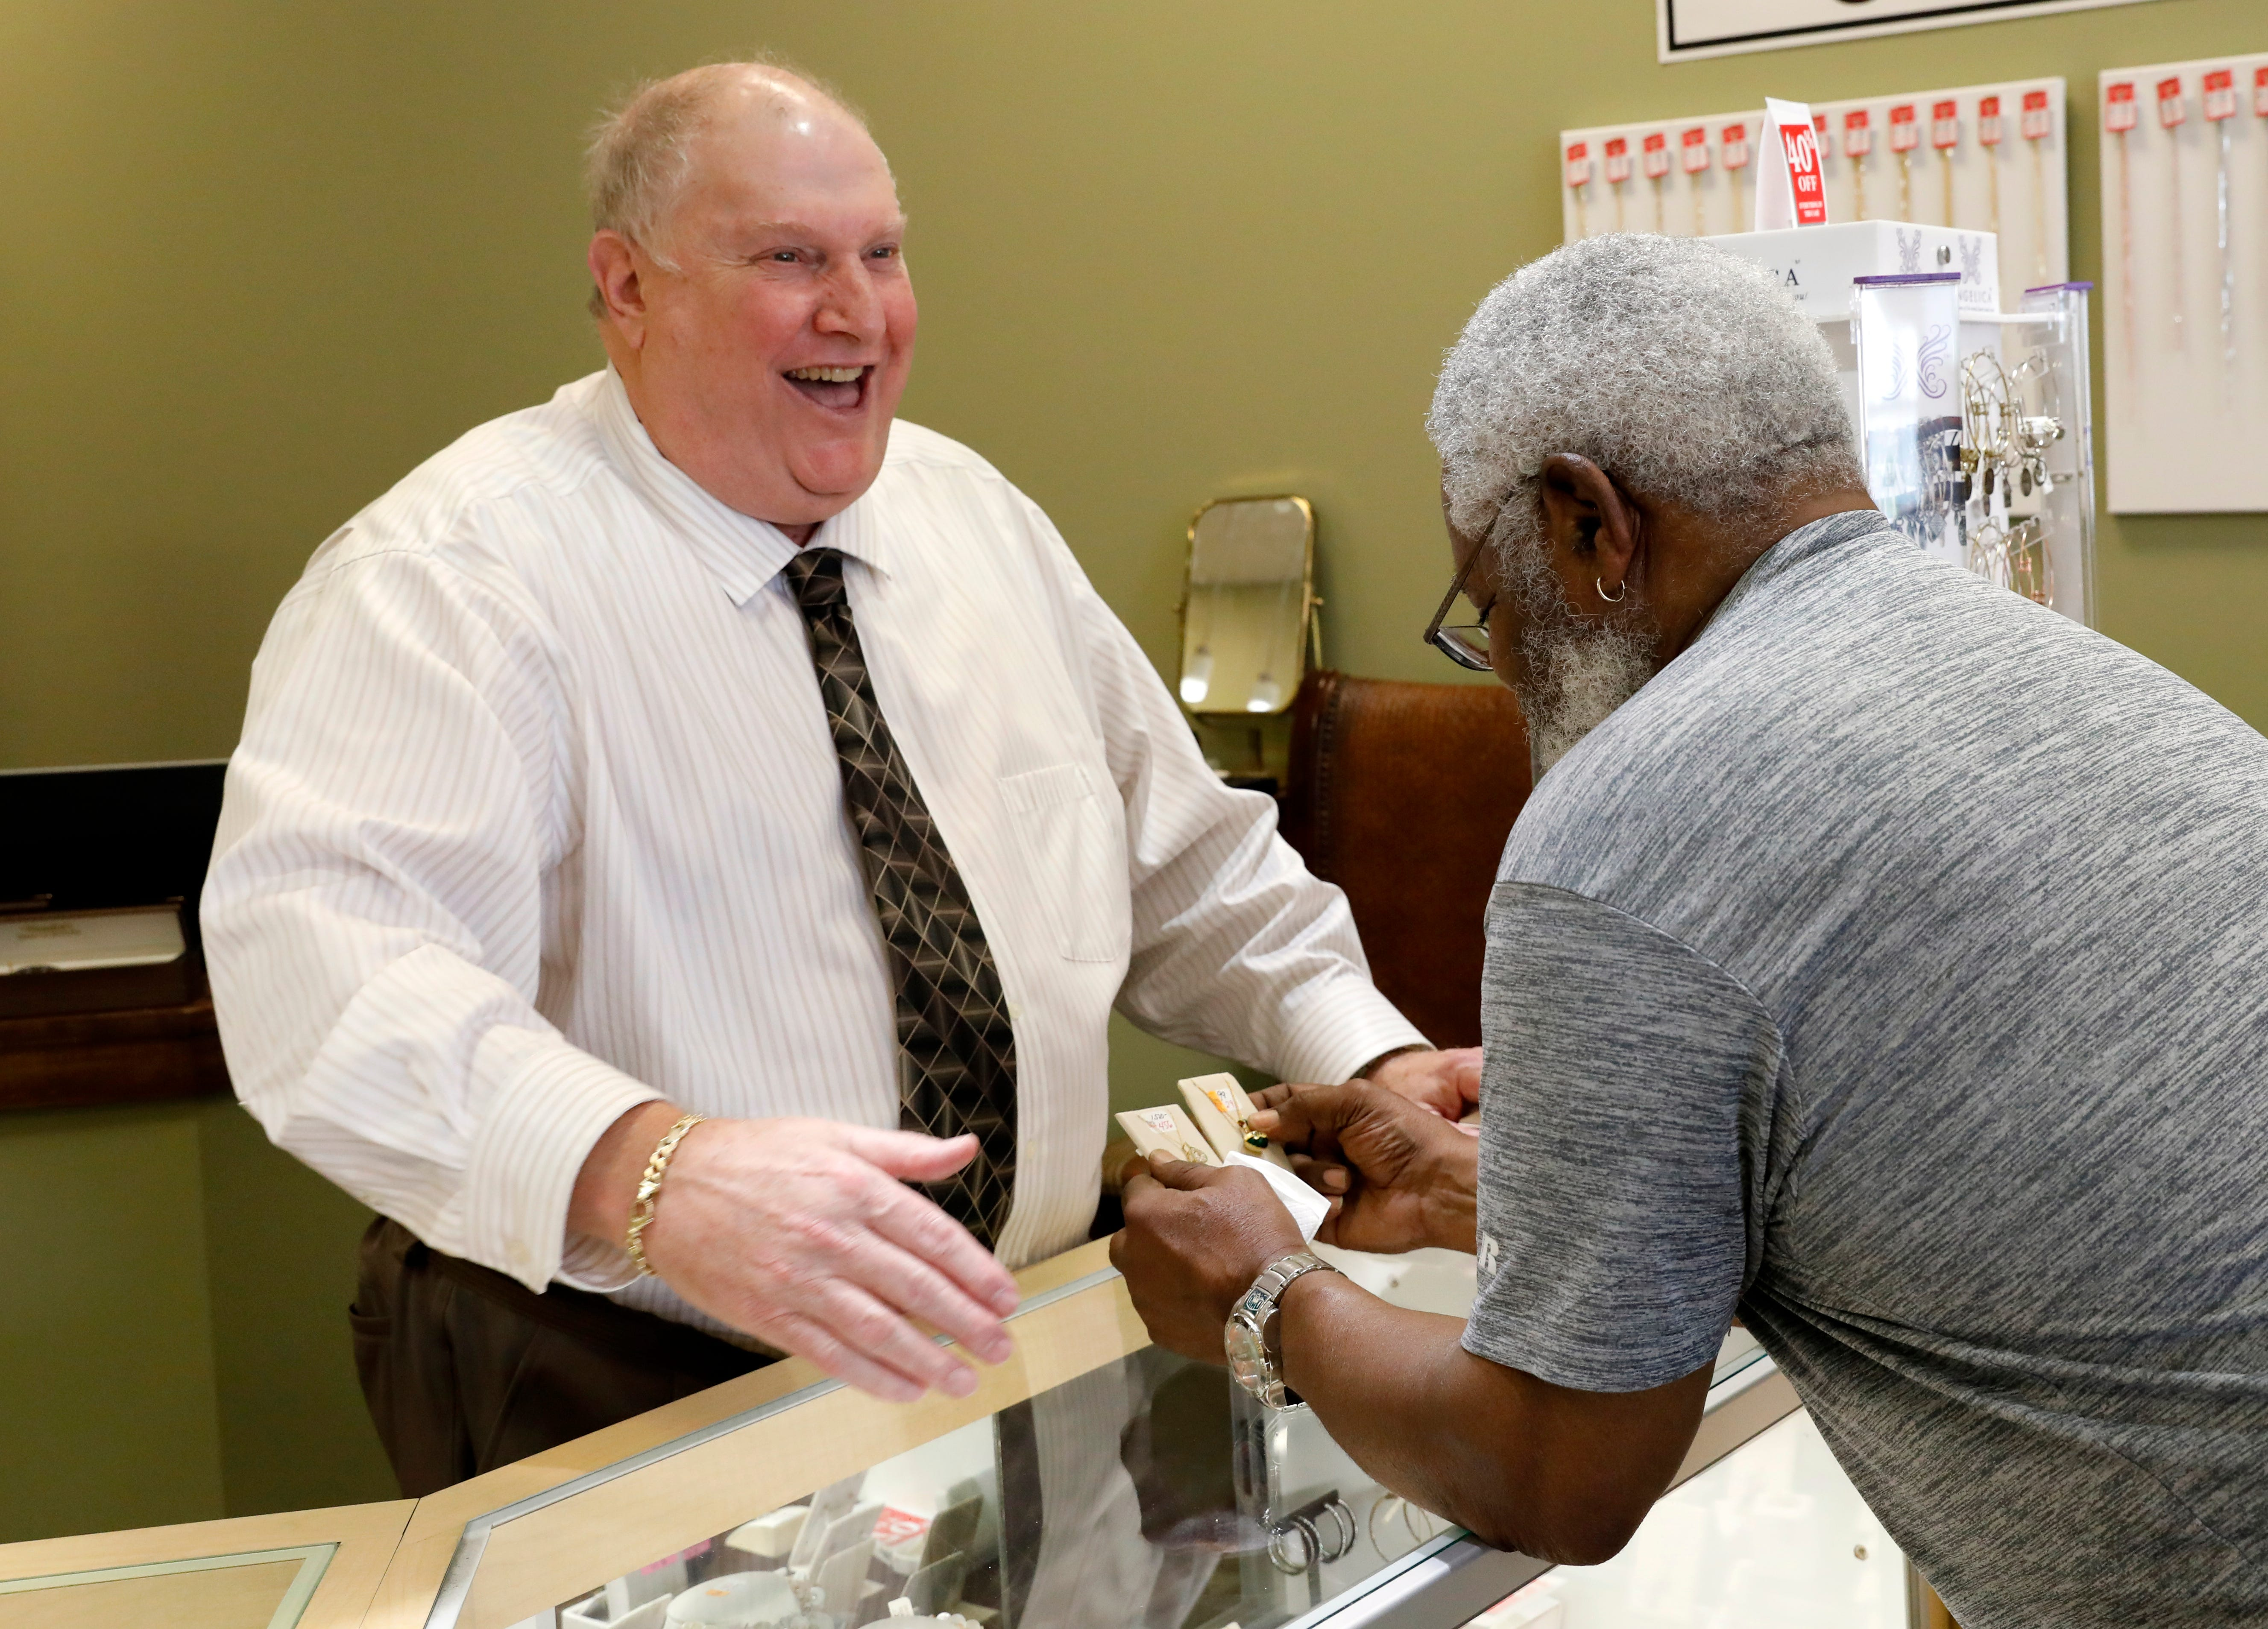 Stuart Palestrant laughs as he helps customer Chuck Williams, from Reynoldsburg, Tuesday afternoon, Aug. 28, 2018, at Wendel's Diamond Jewelers in Lancaster. Palestrant is retiring after 40 years of working at the store and owning it for the last 30 years.